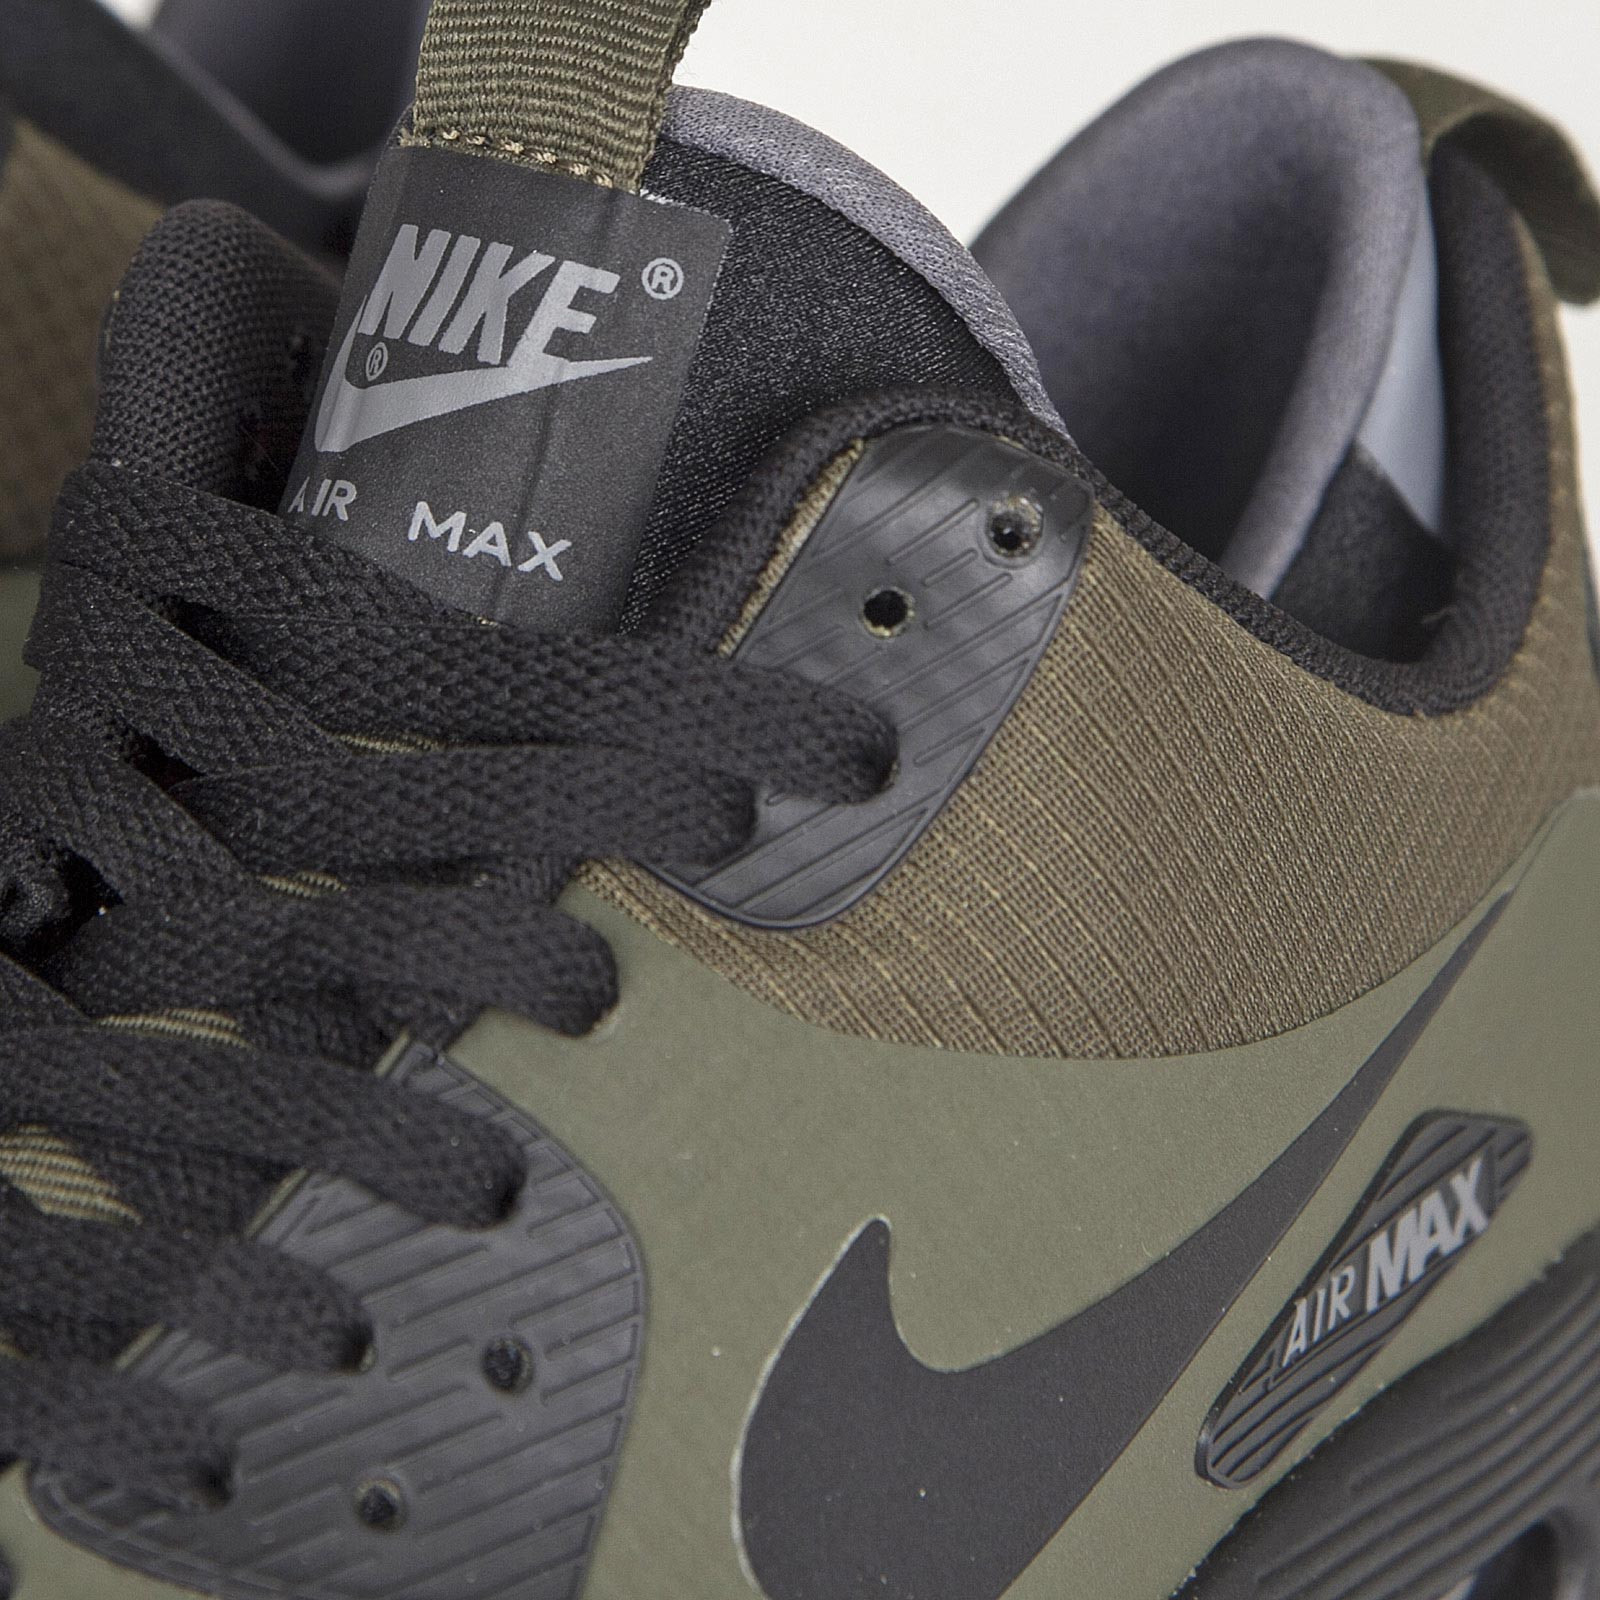 Nike Air Max 90 Mid Winter 806808 300 Sneakersnstuff